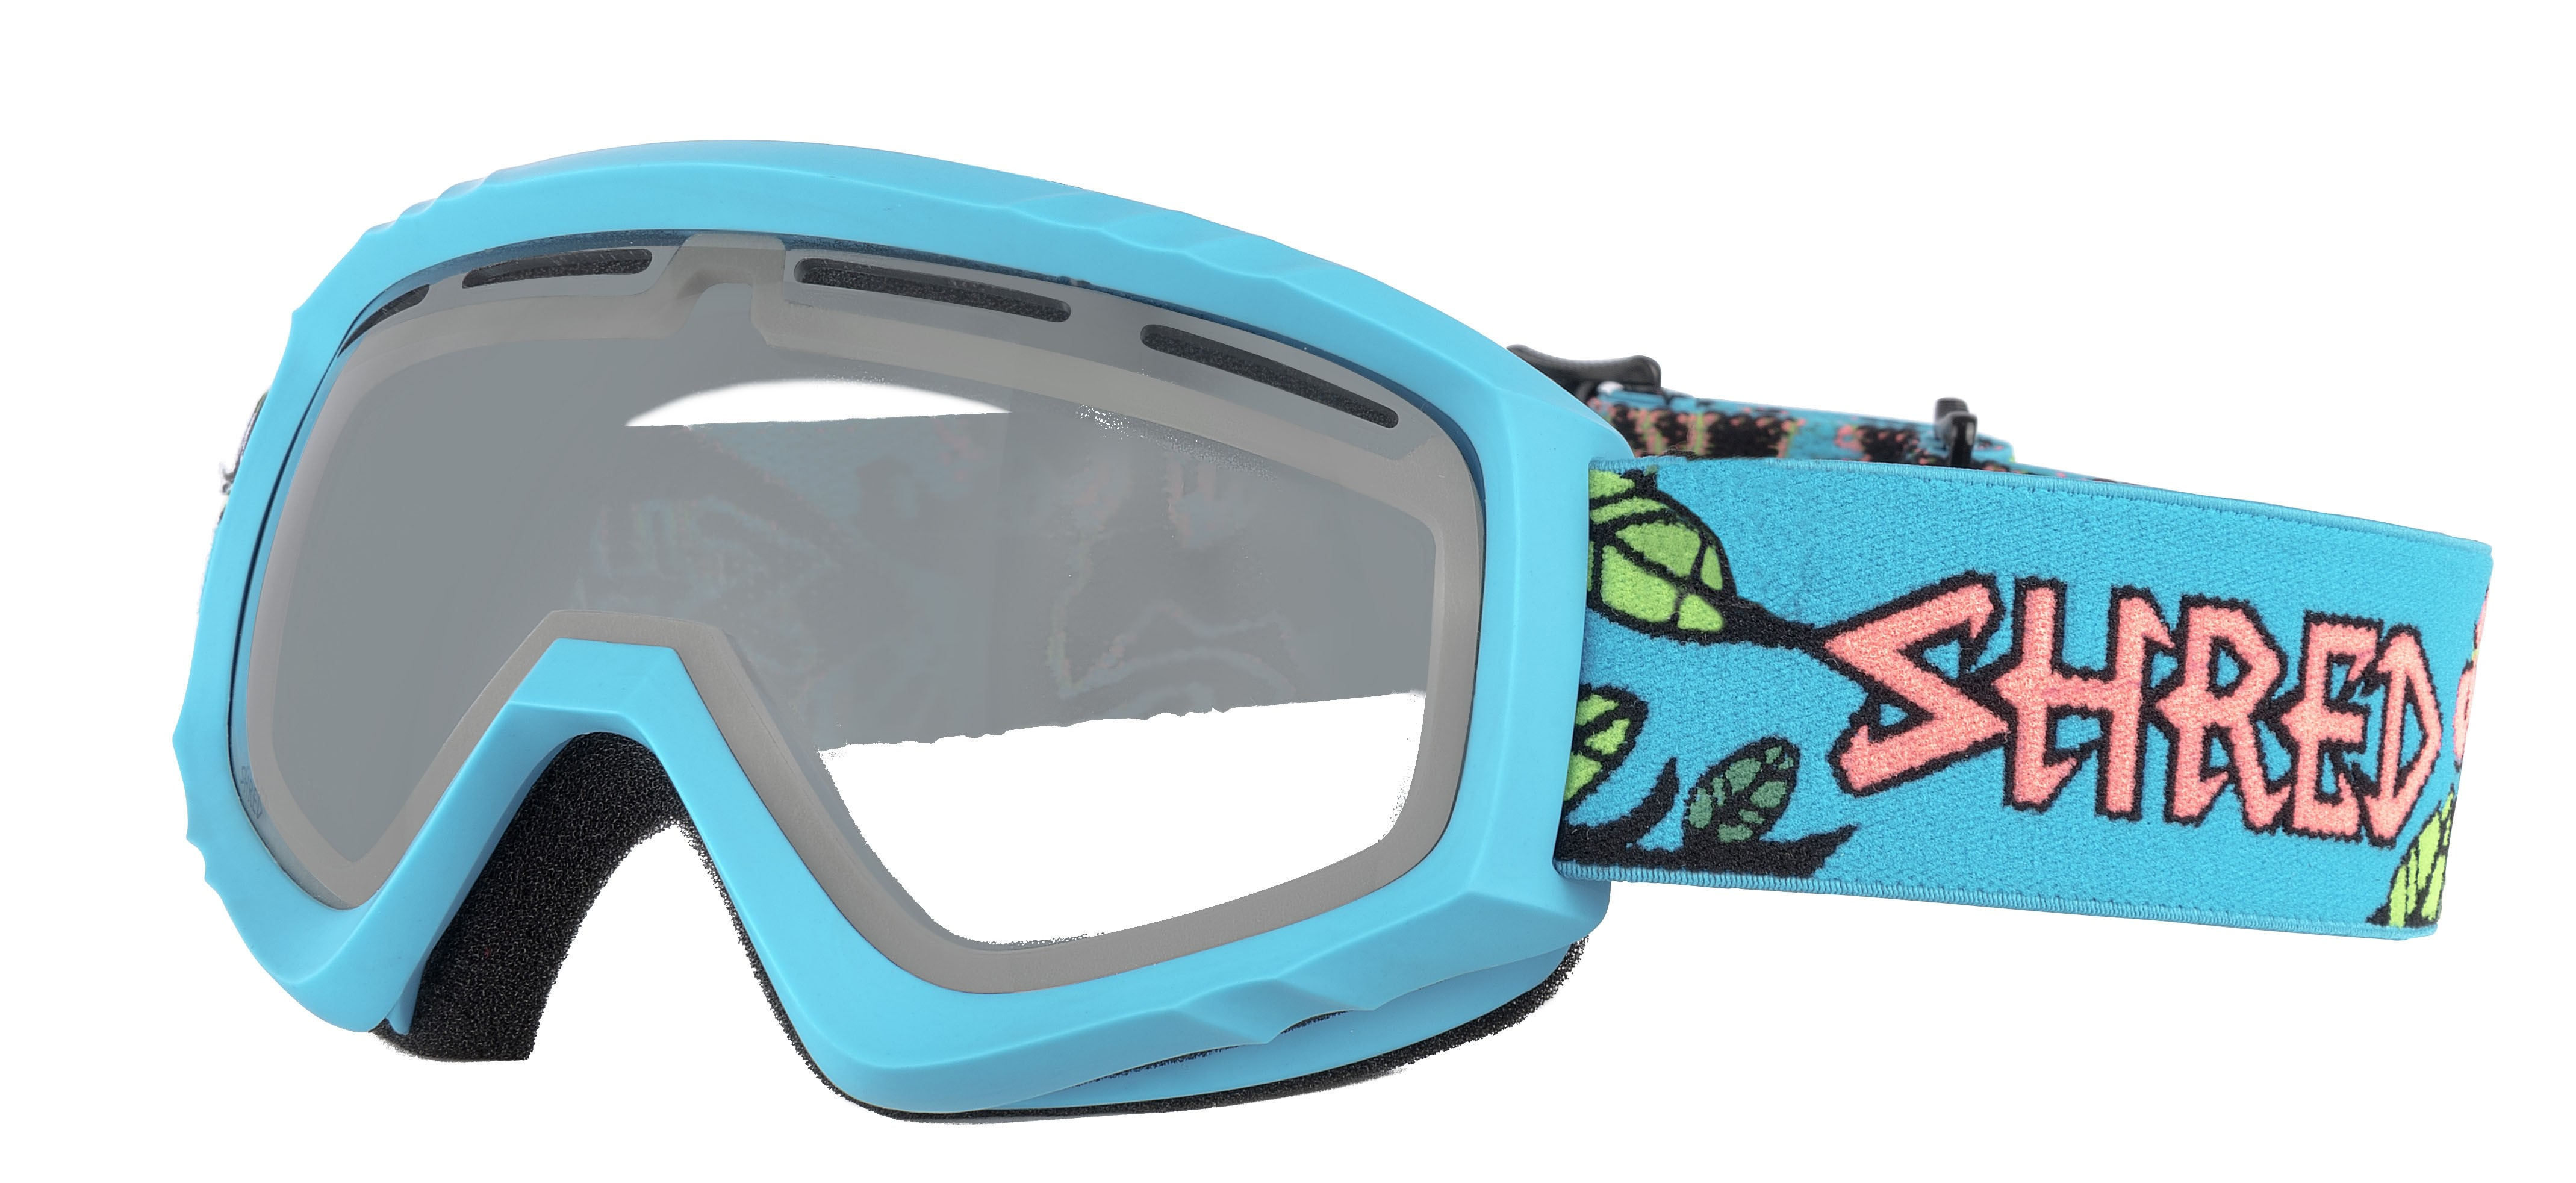 Shred MINI Dragosaurus goggles, 2018